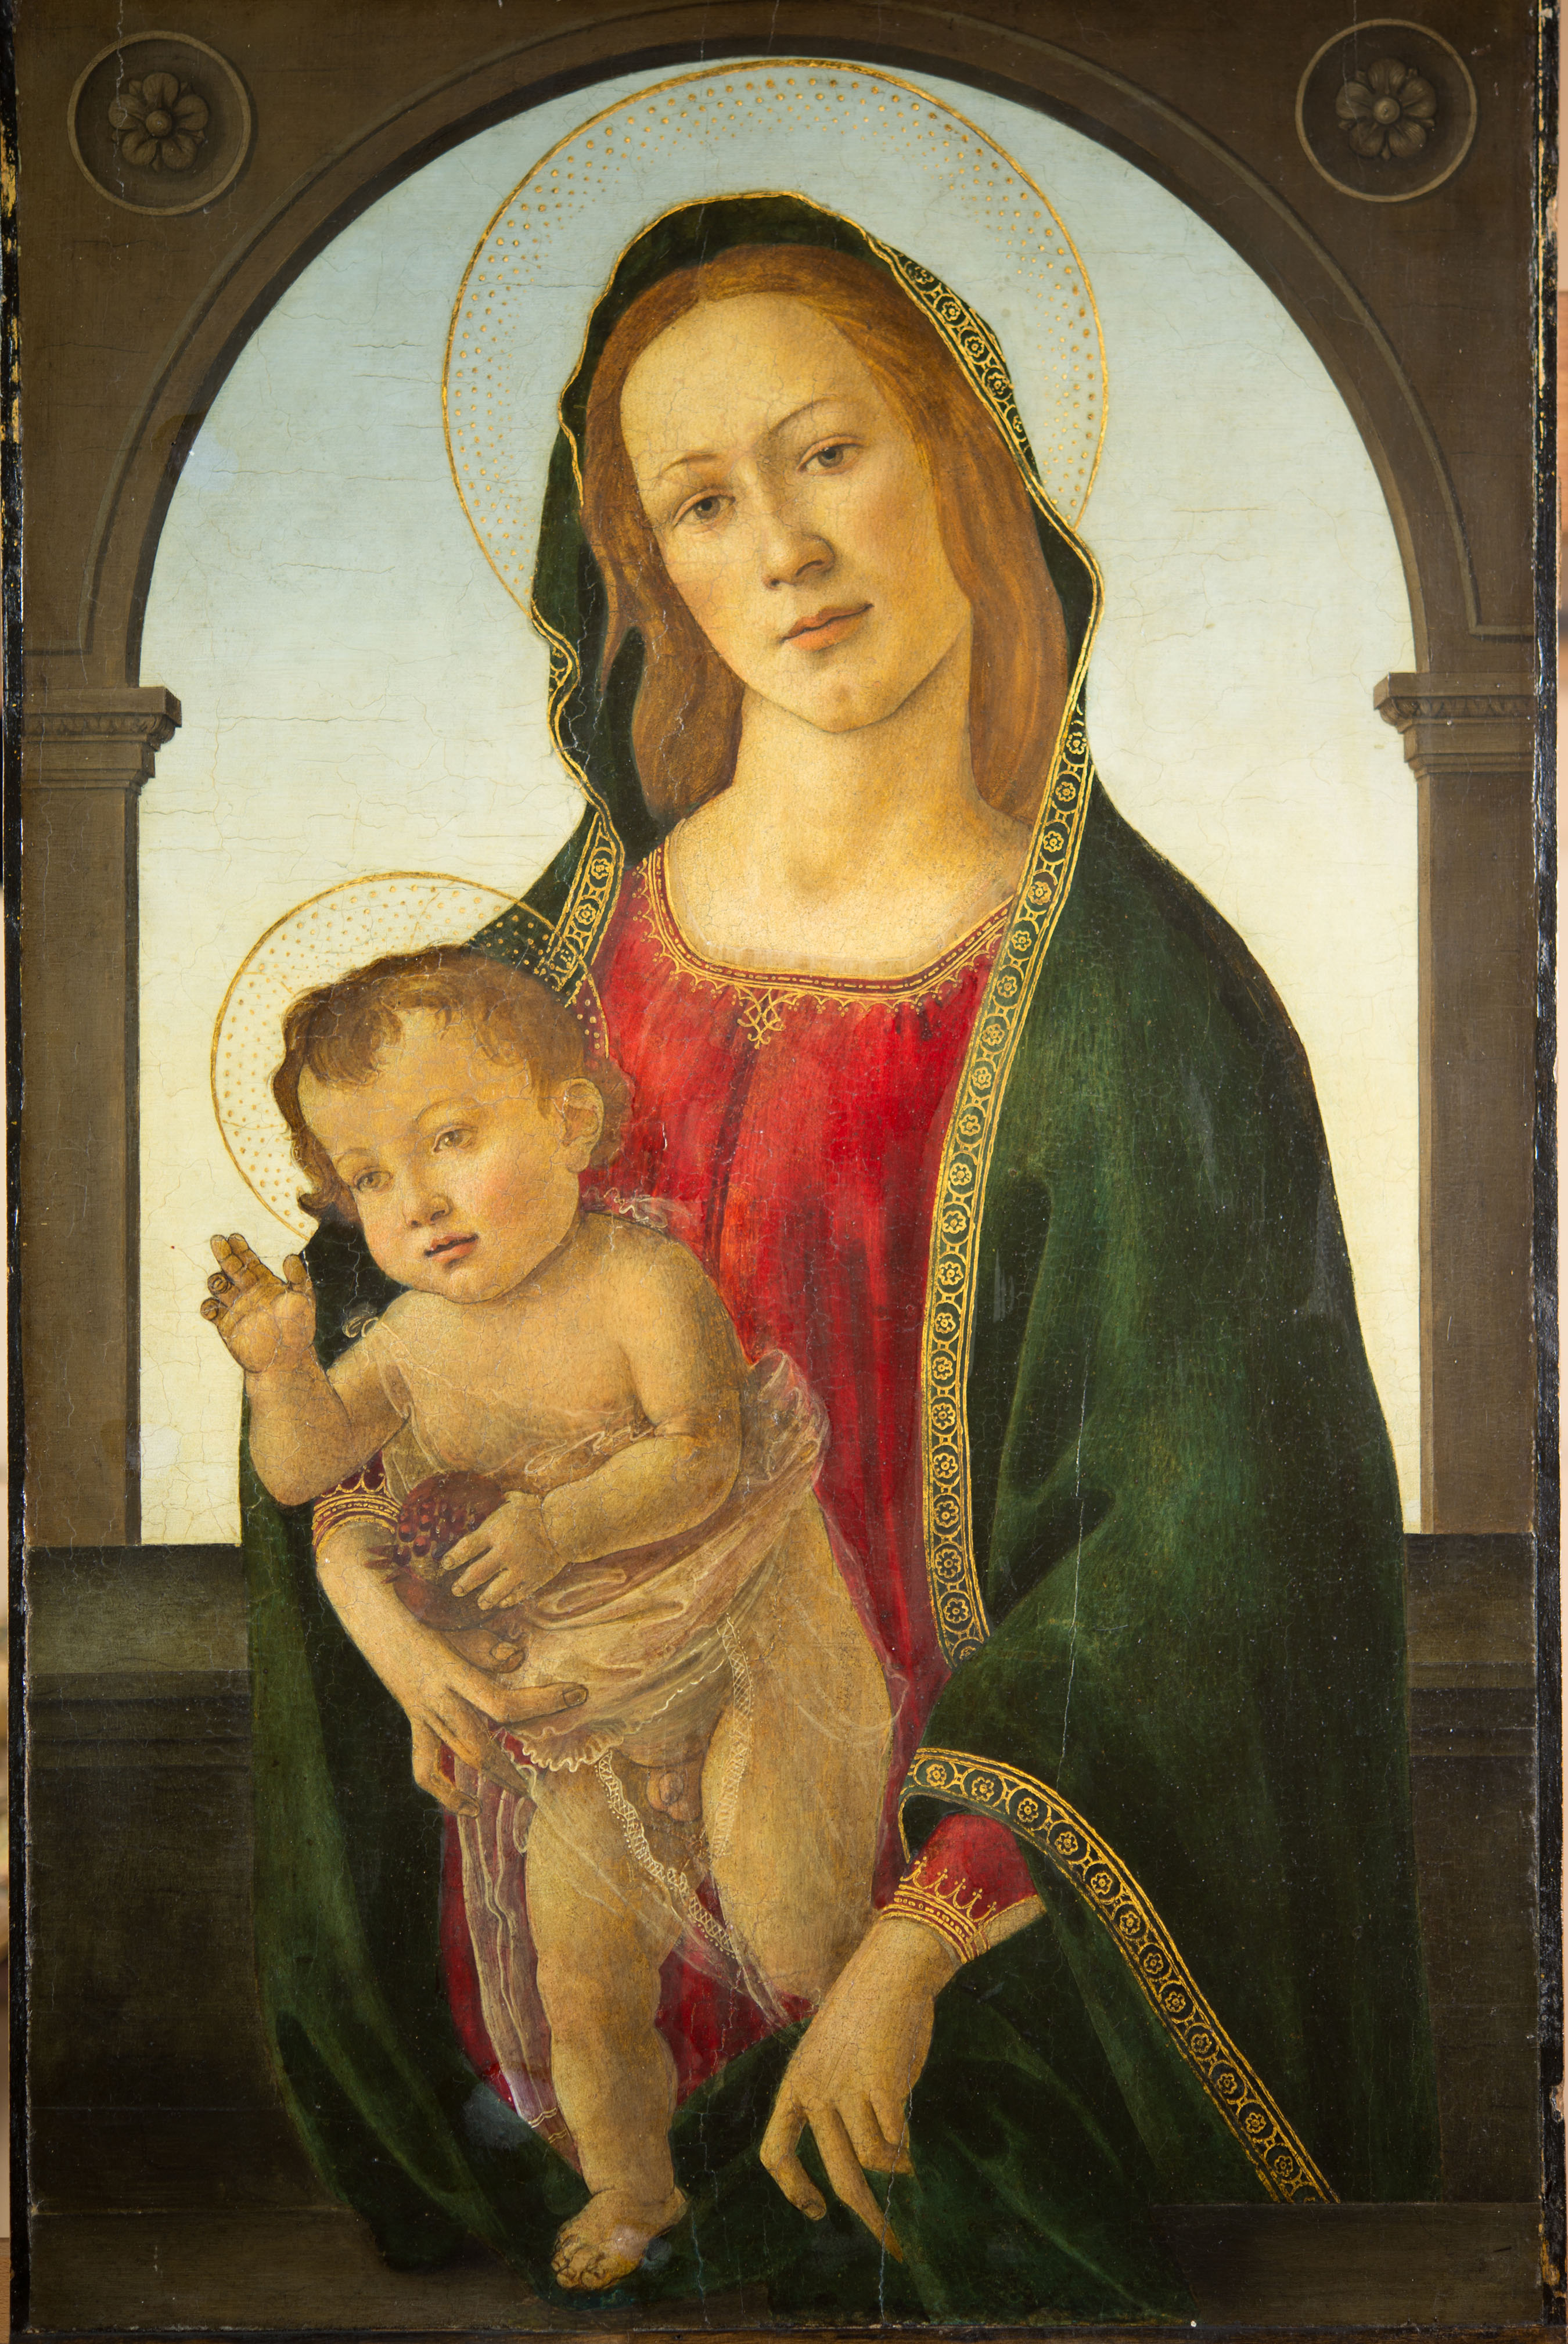 Botticelli 'copy' in a Welsh museum turns out to be the real thing worth tens of millions